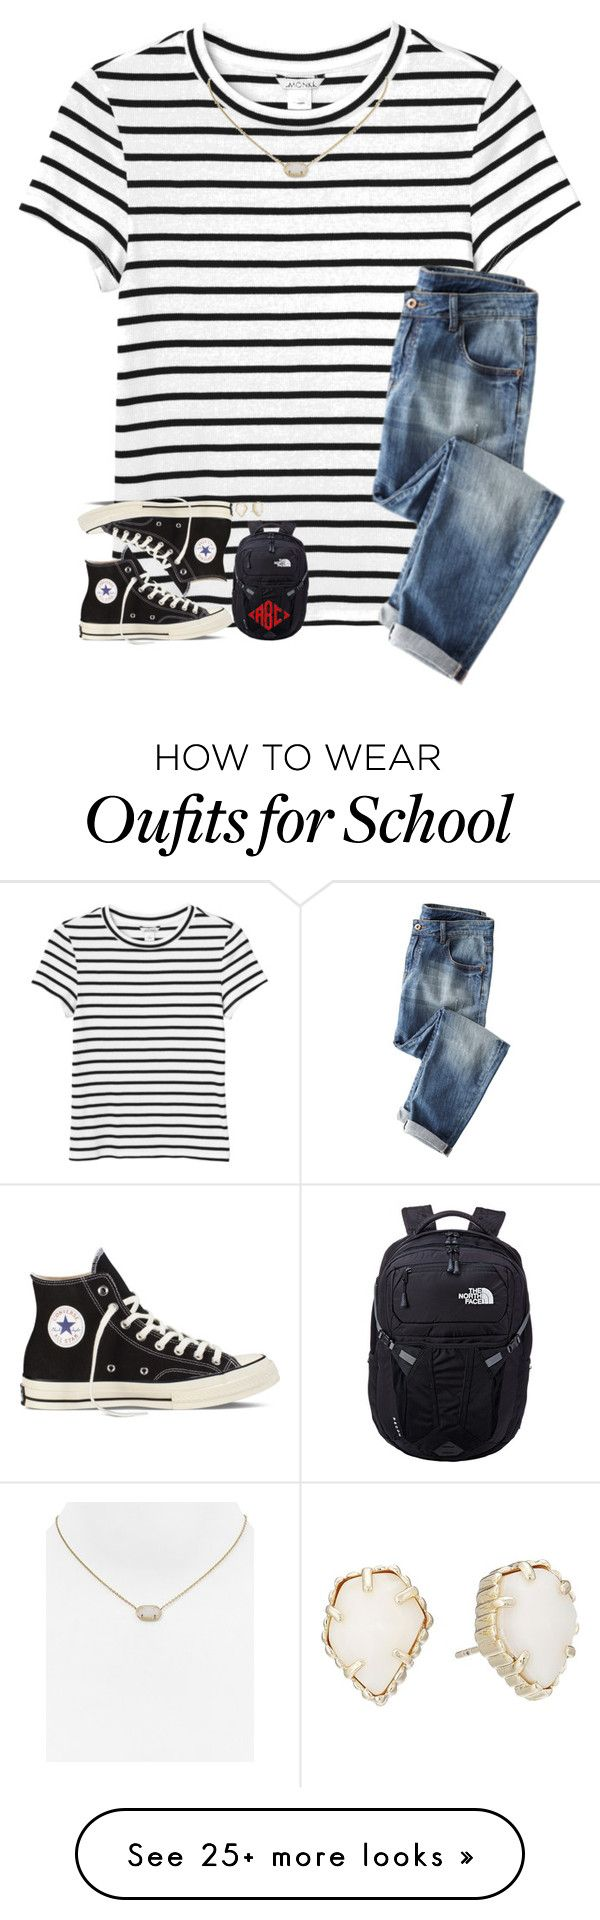 """""""Day 4: First day of school"""" by breezerw on Polyvore featuring Monki, Converse, Kendra Scott, The North Face and bestiesbacktoschool"""